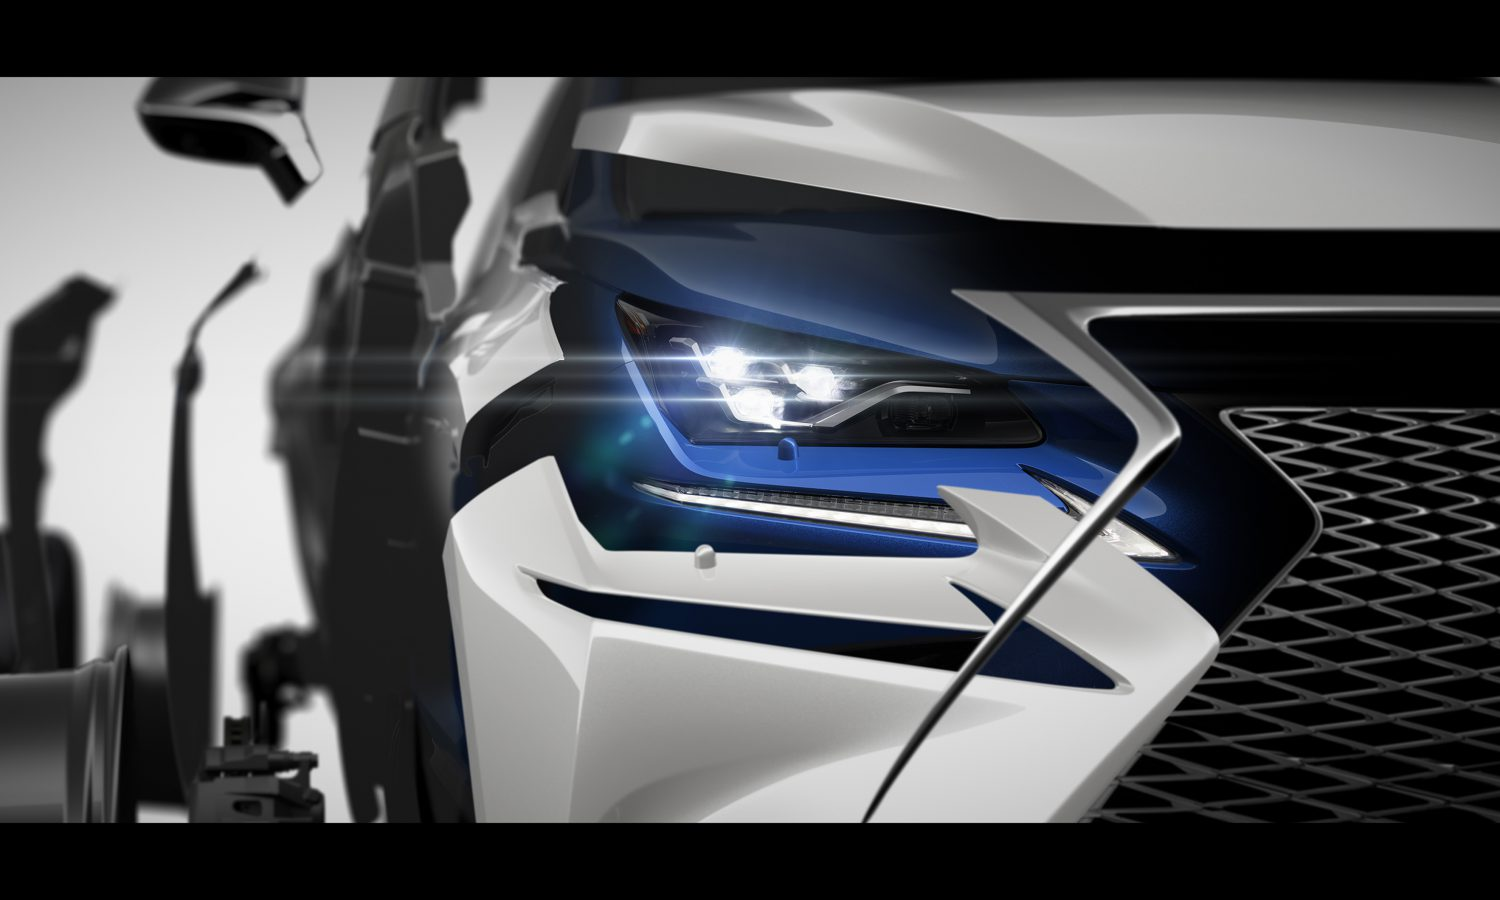 Refreshed Lexus NX to Make Its World Premiere at Auto Shanghai 2017